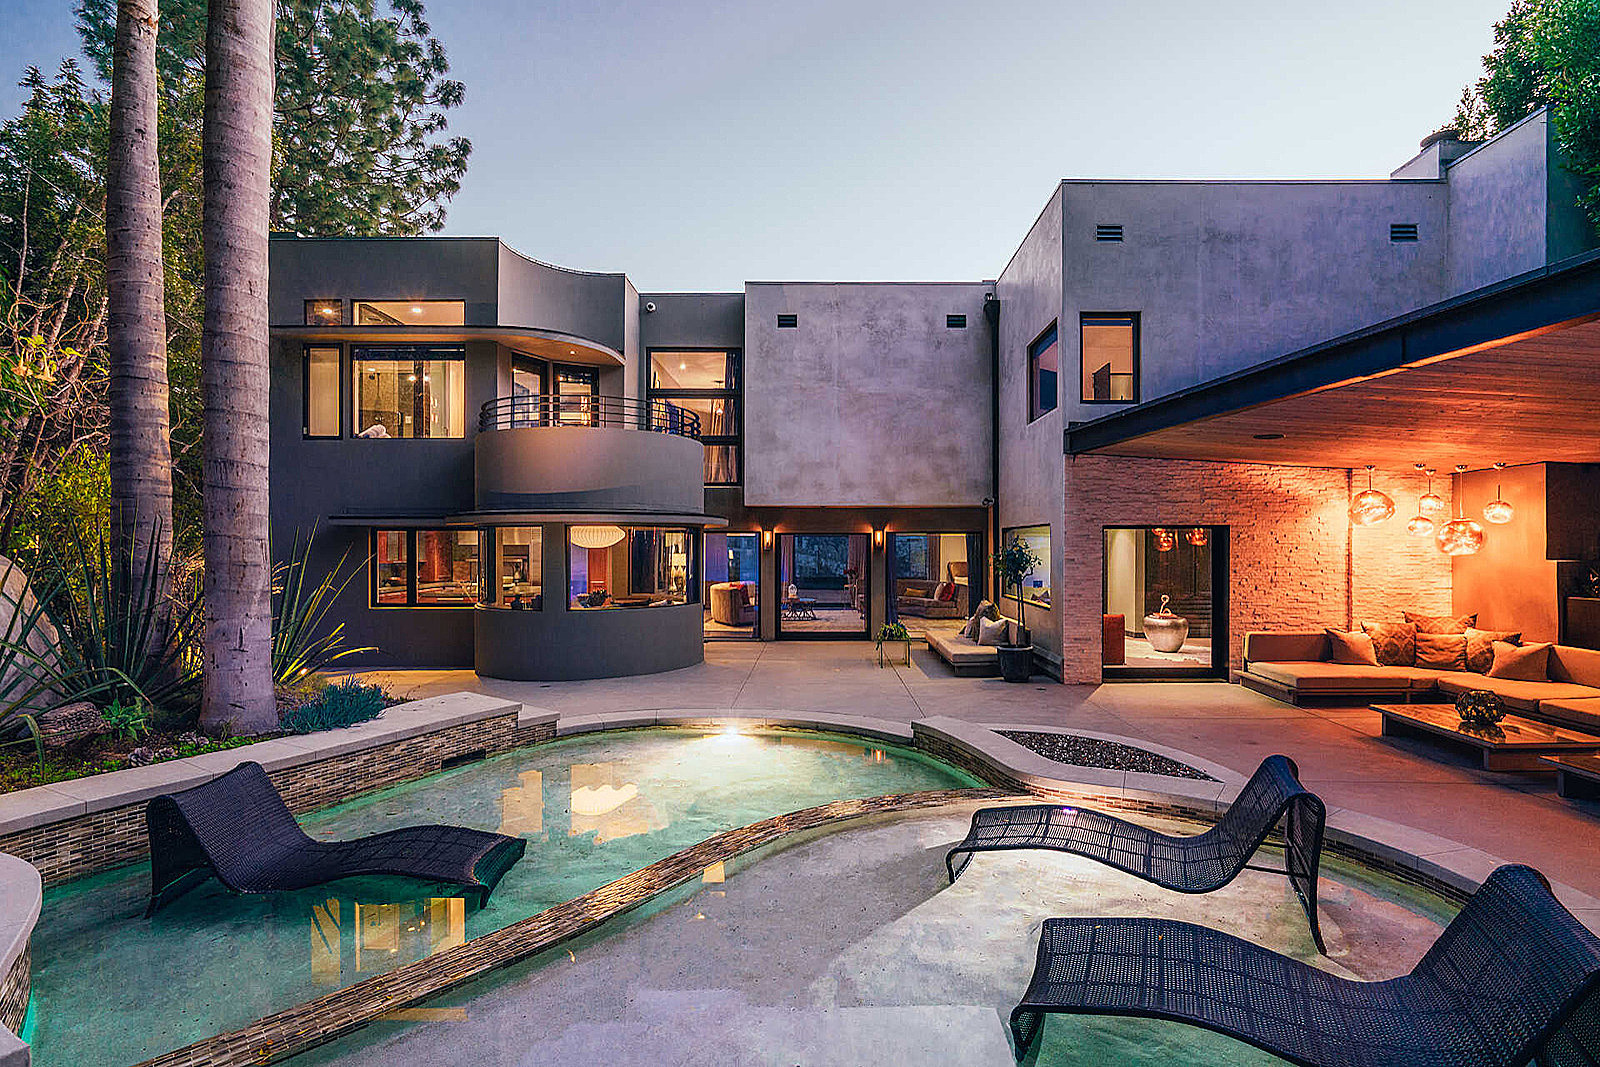 Queen's Adam Lambert Sells 'Chic' Hollywood Home for $2.9 Million